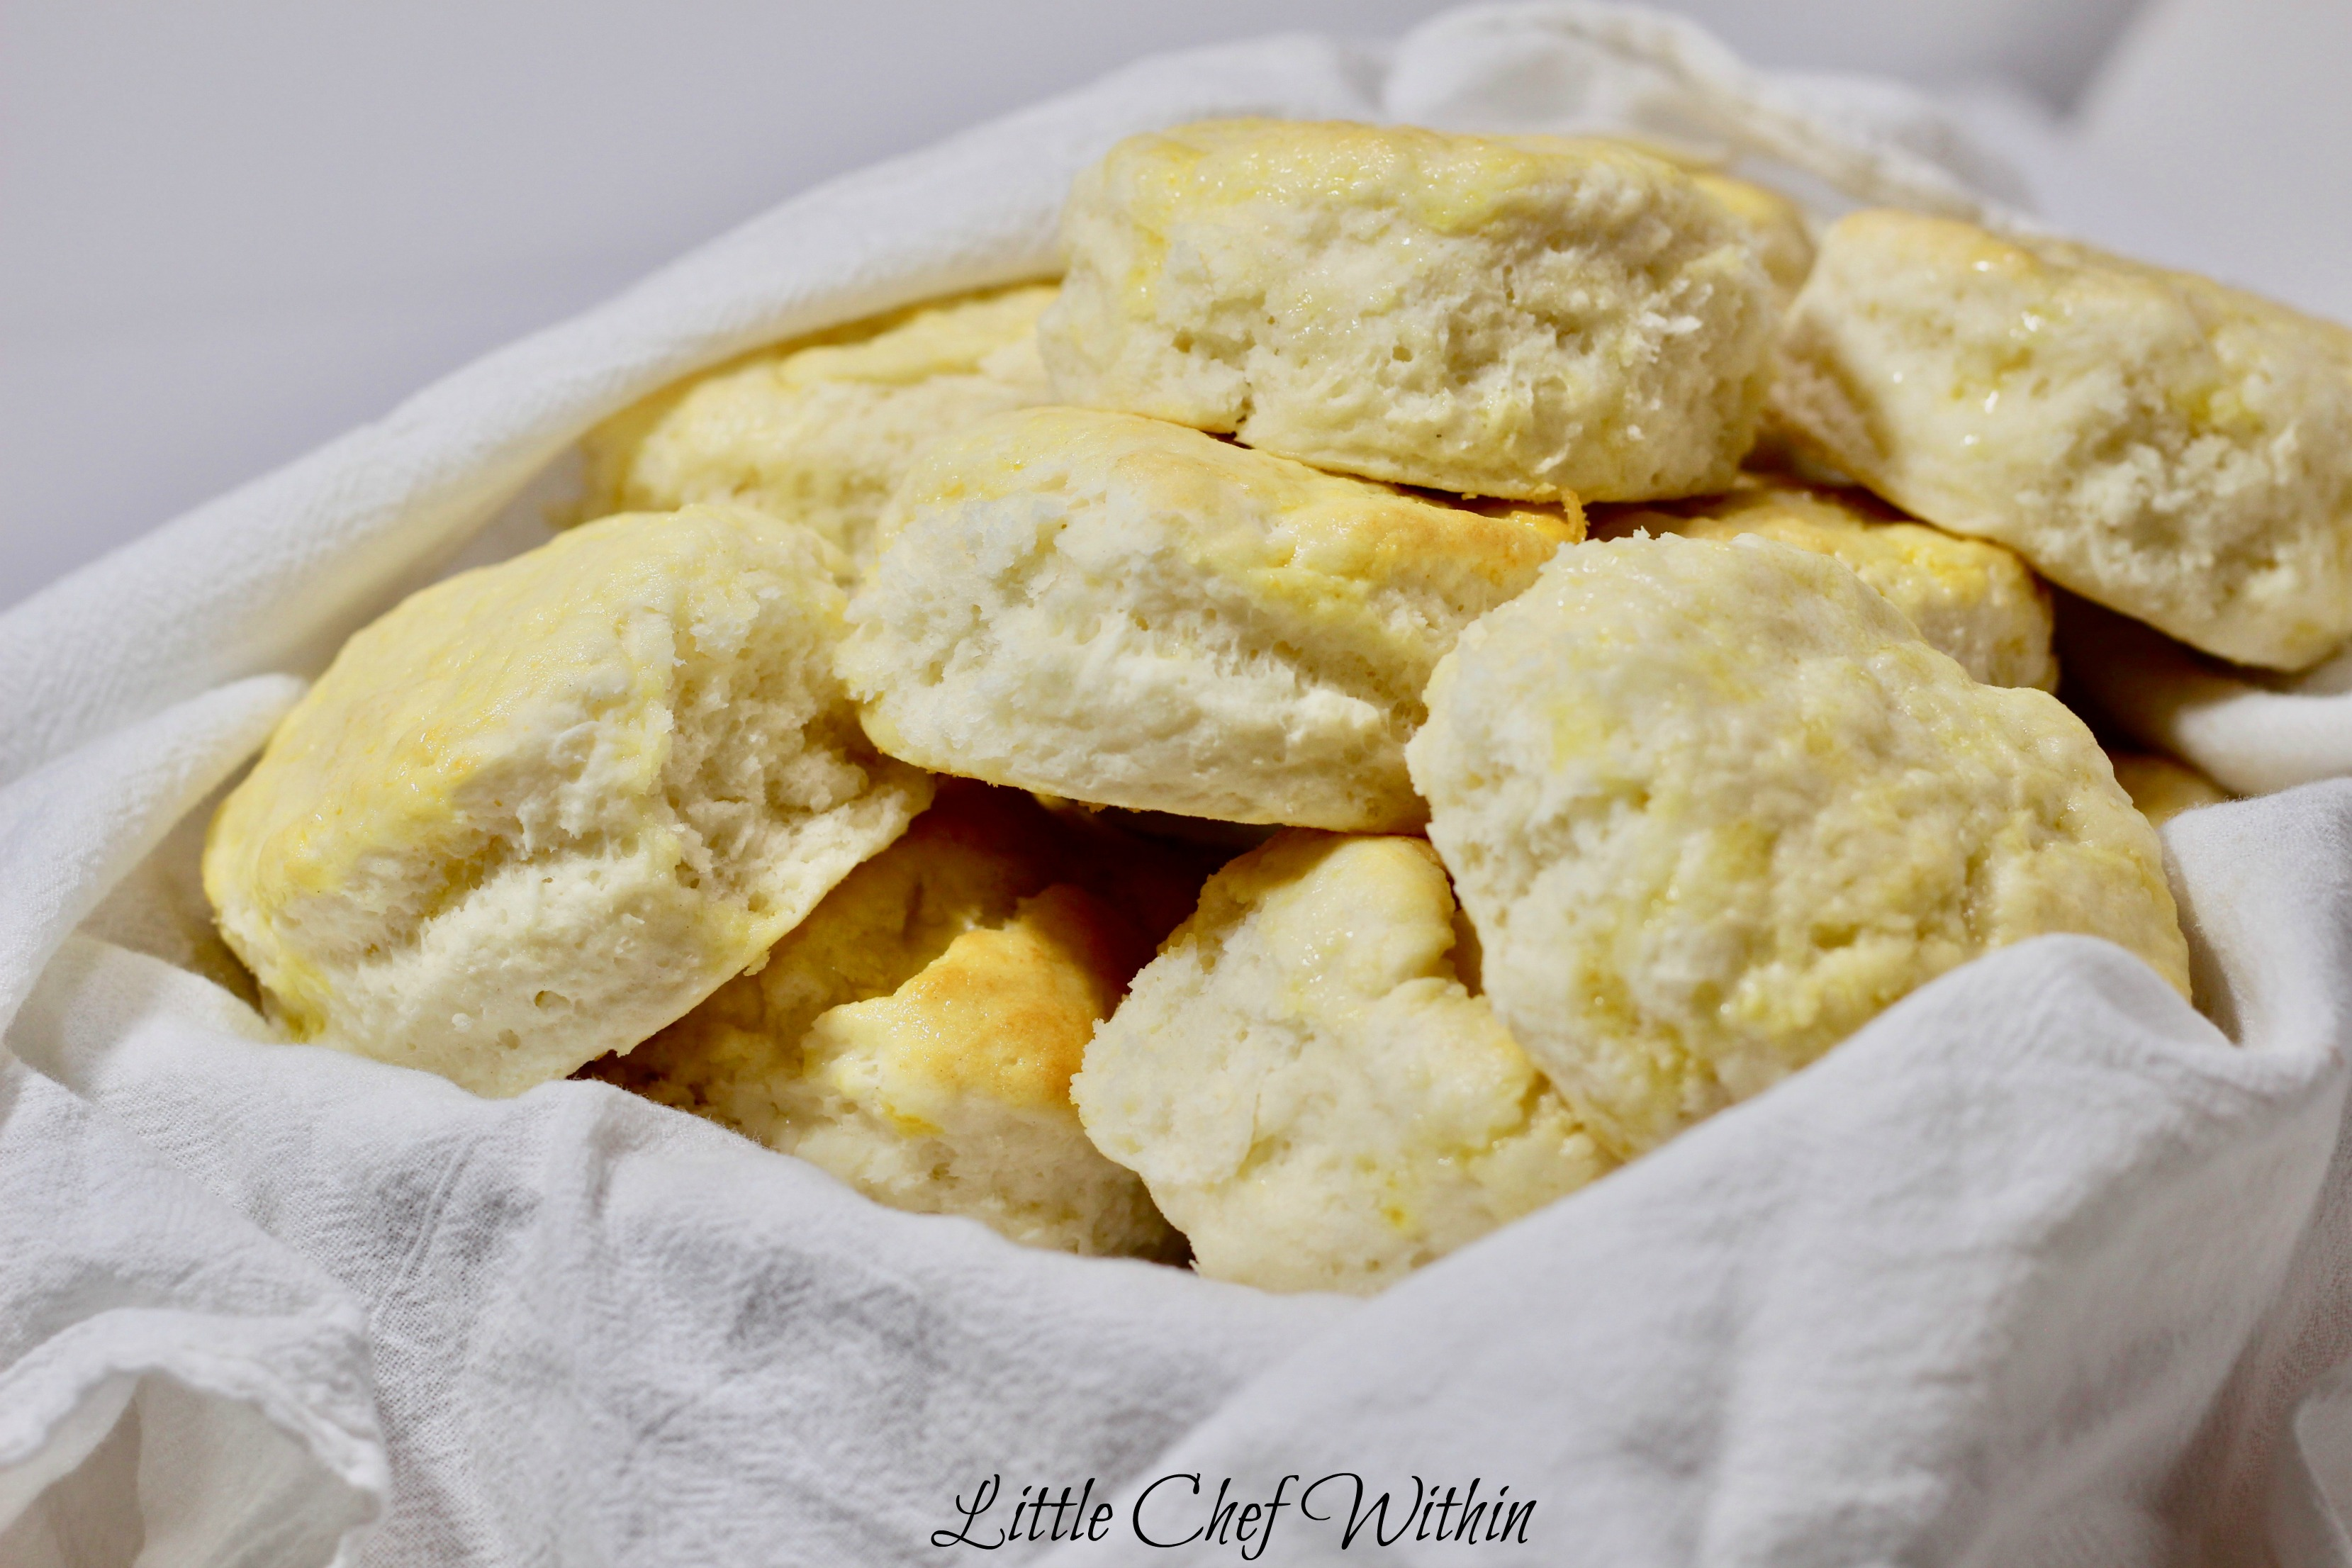 The World's Easiest Sour Cream Biscuits (only 3 ingredients)